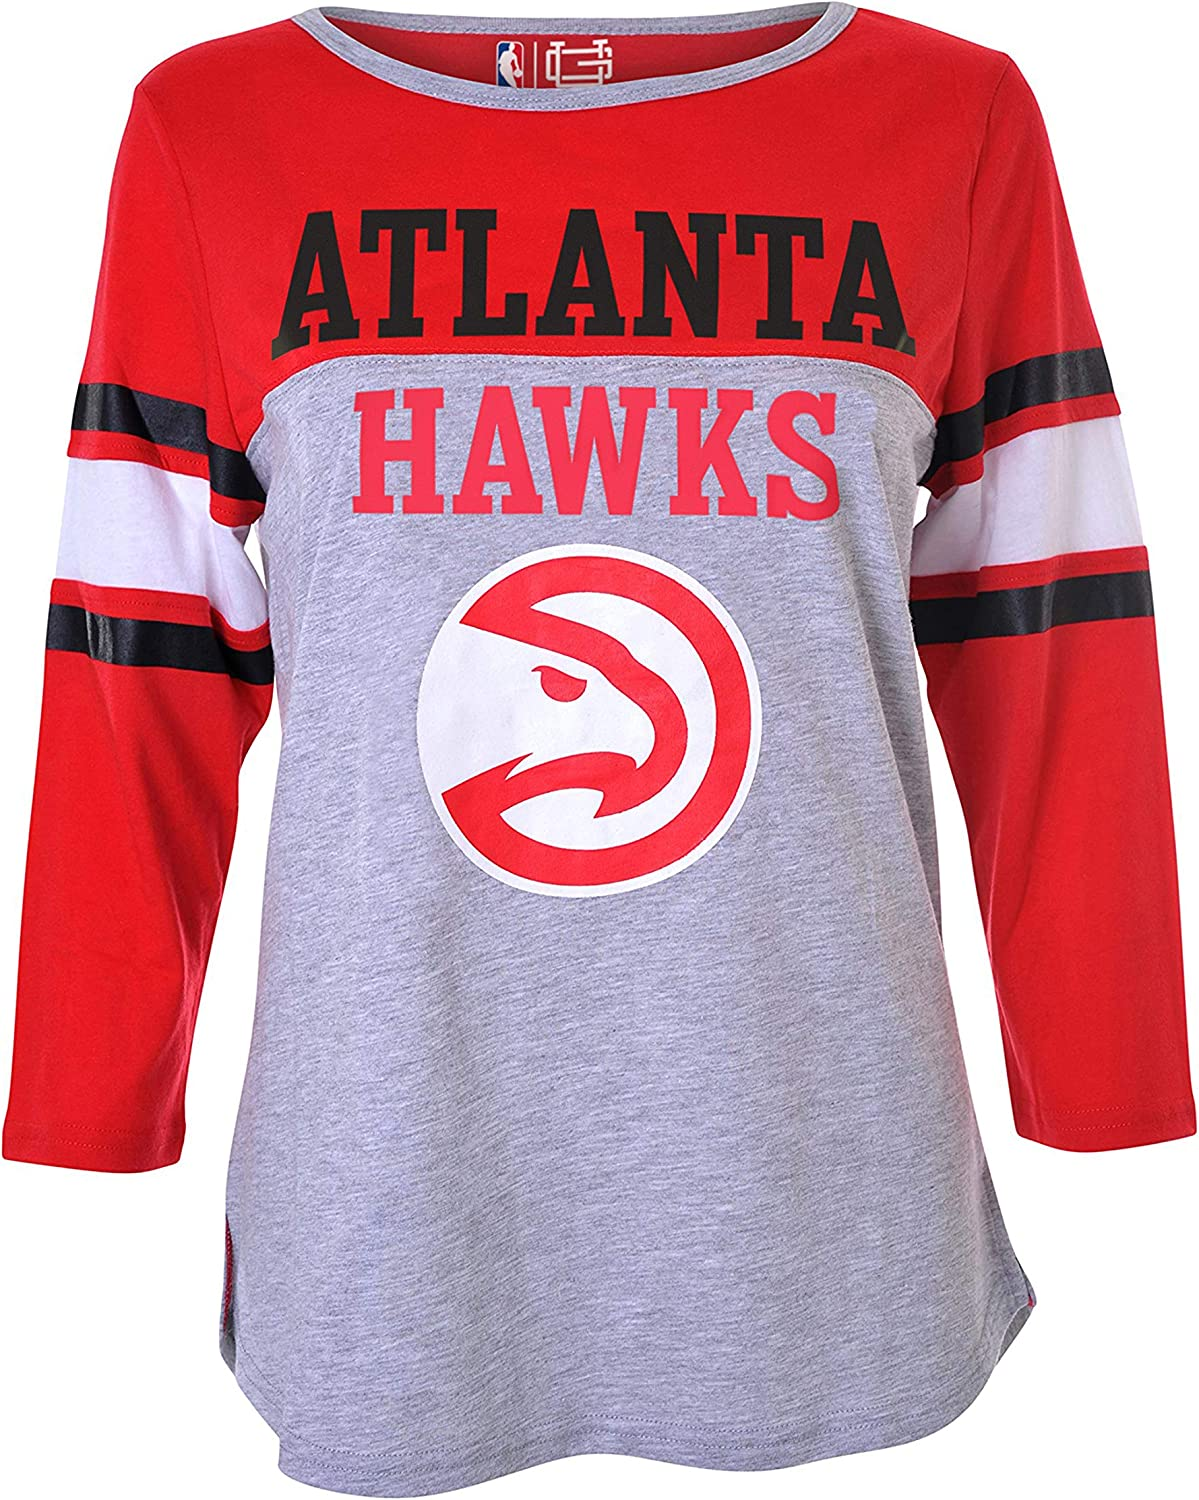 Ultra Game NBA Atlanta Hawks Womens T-Shirt Raglan Baseball 3//4 Long Sleeve Tee Shirt Small Heather Gray